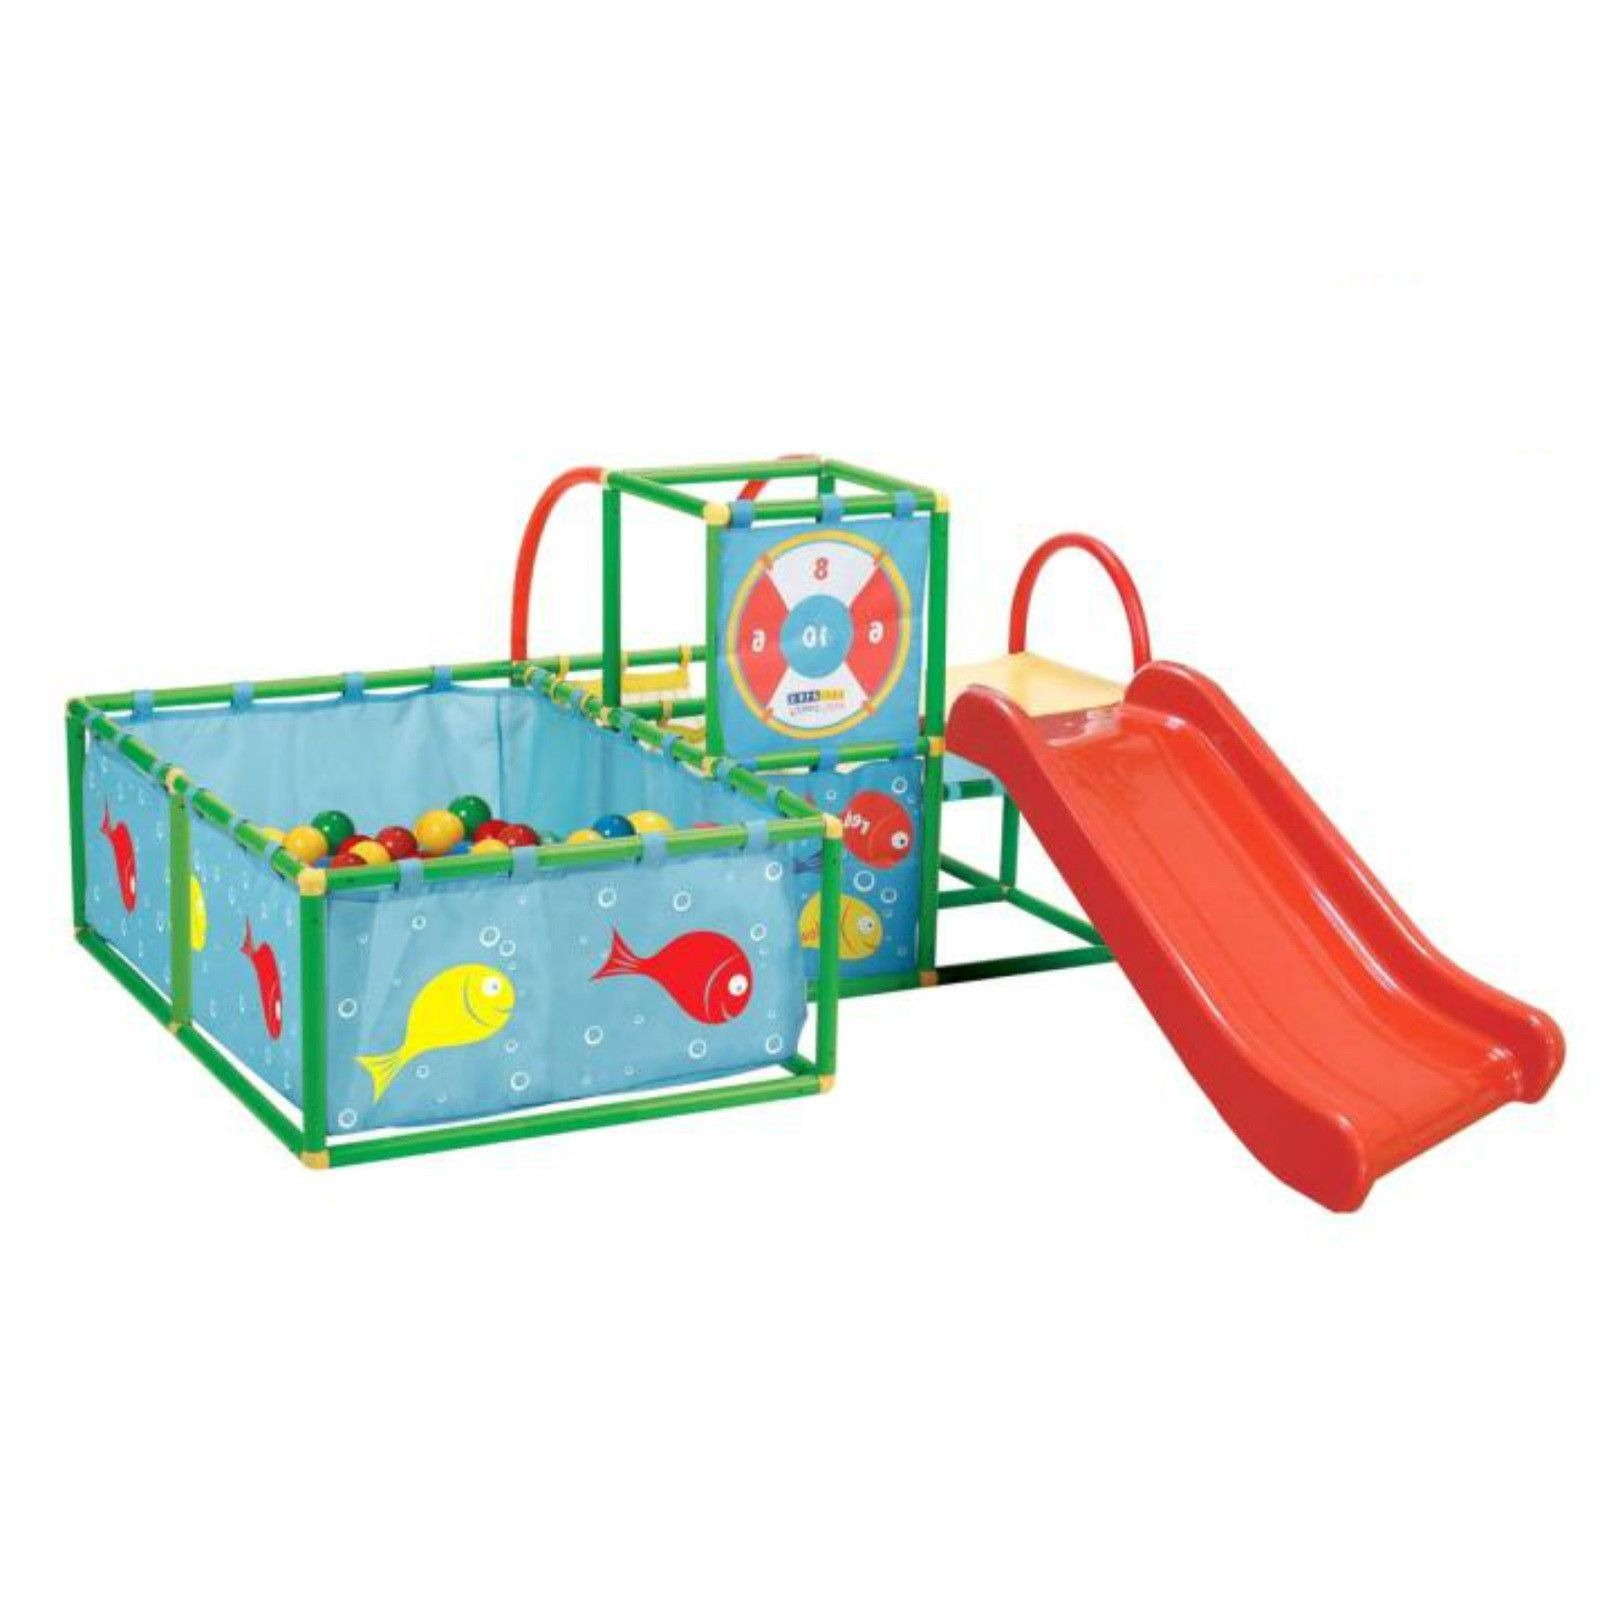 Toddler Gym Set Play Ball Pit Slide Active Indoor Activity Center